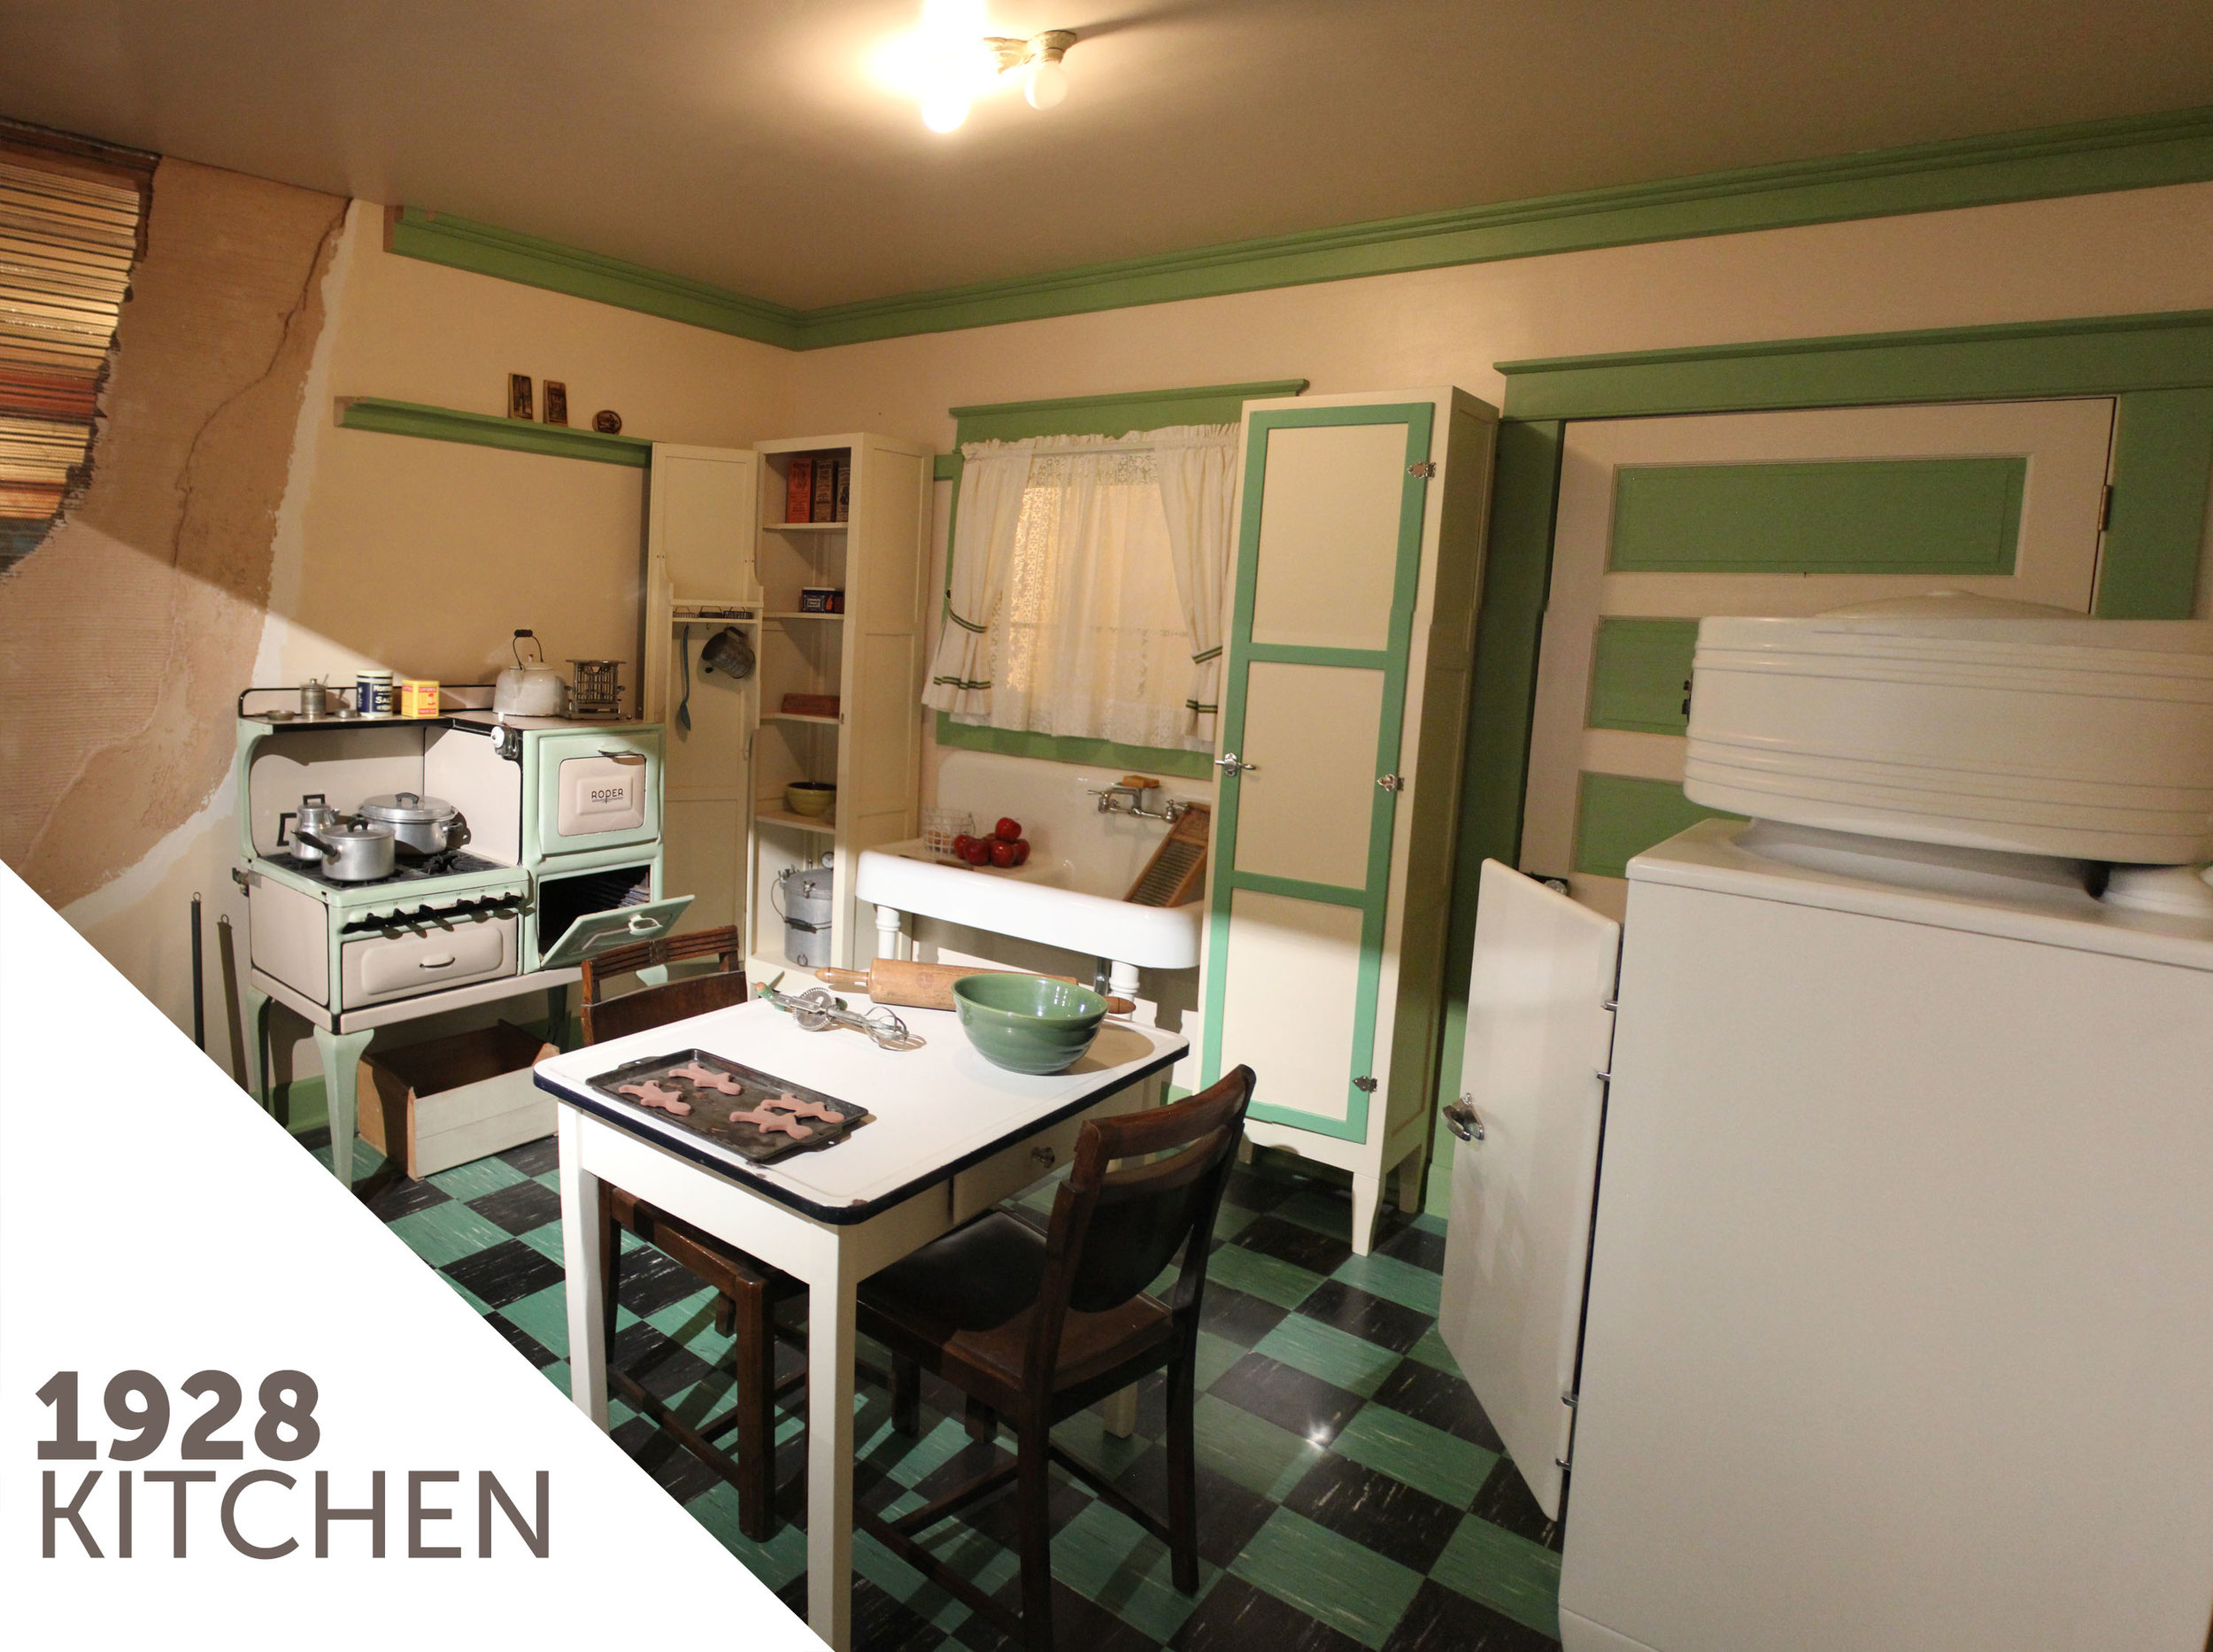 1928_kitchen.jpg